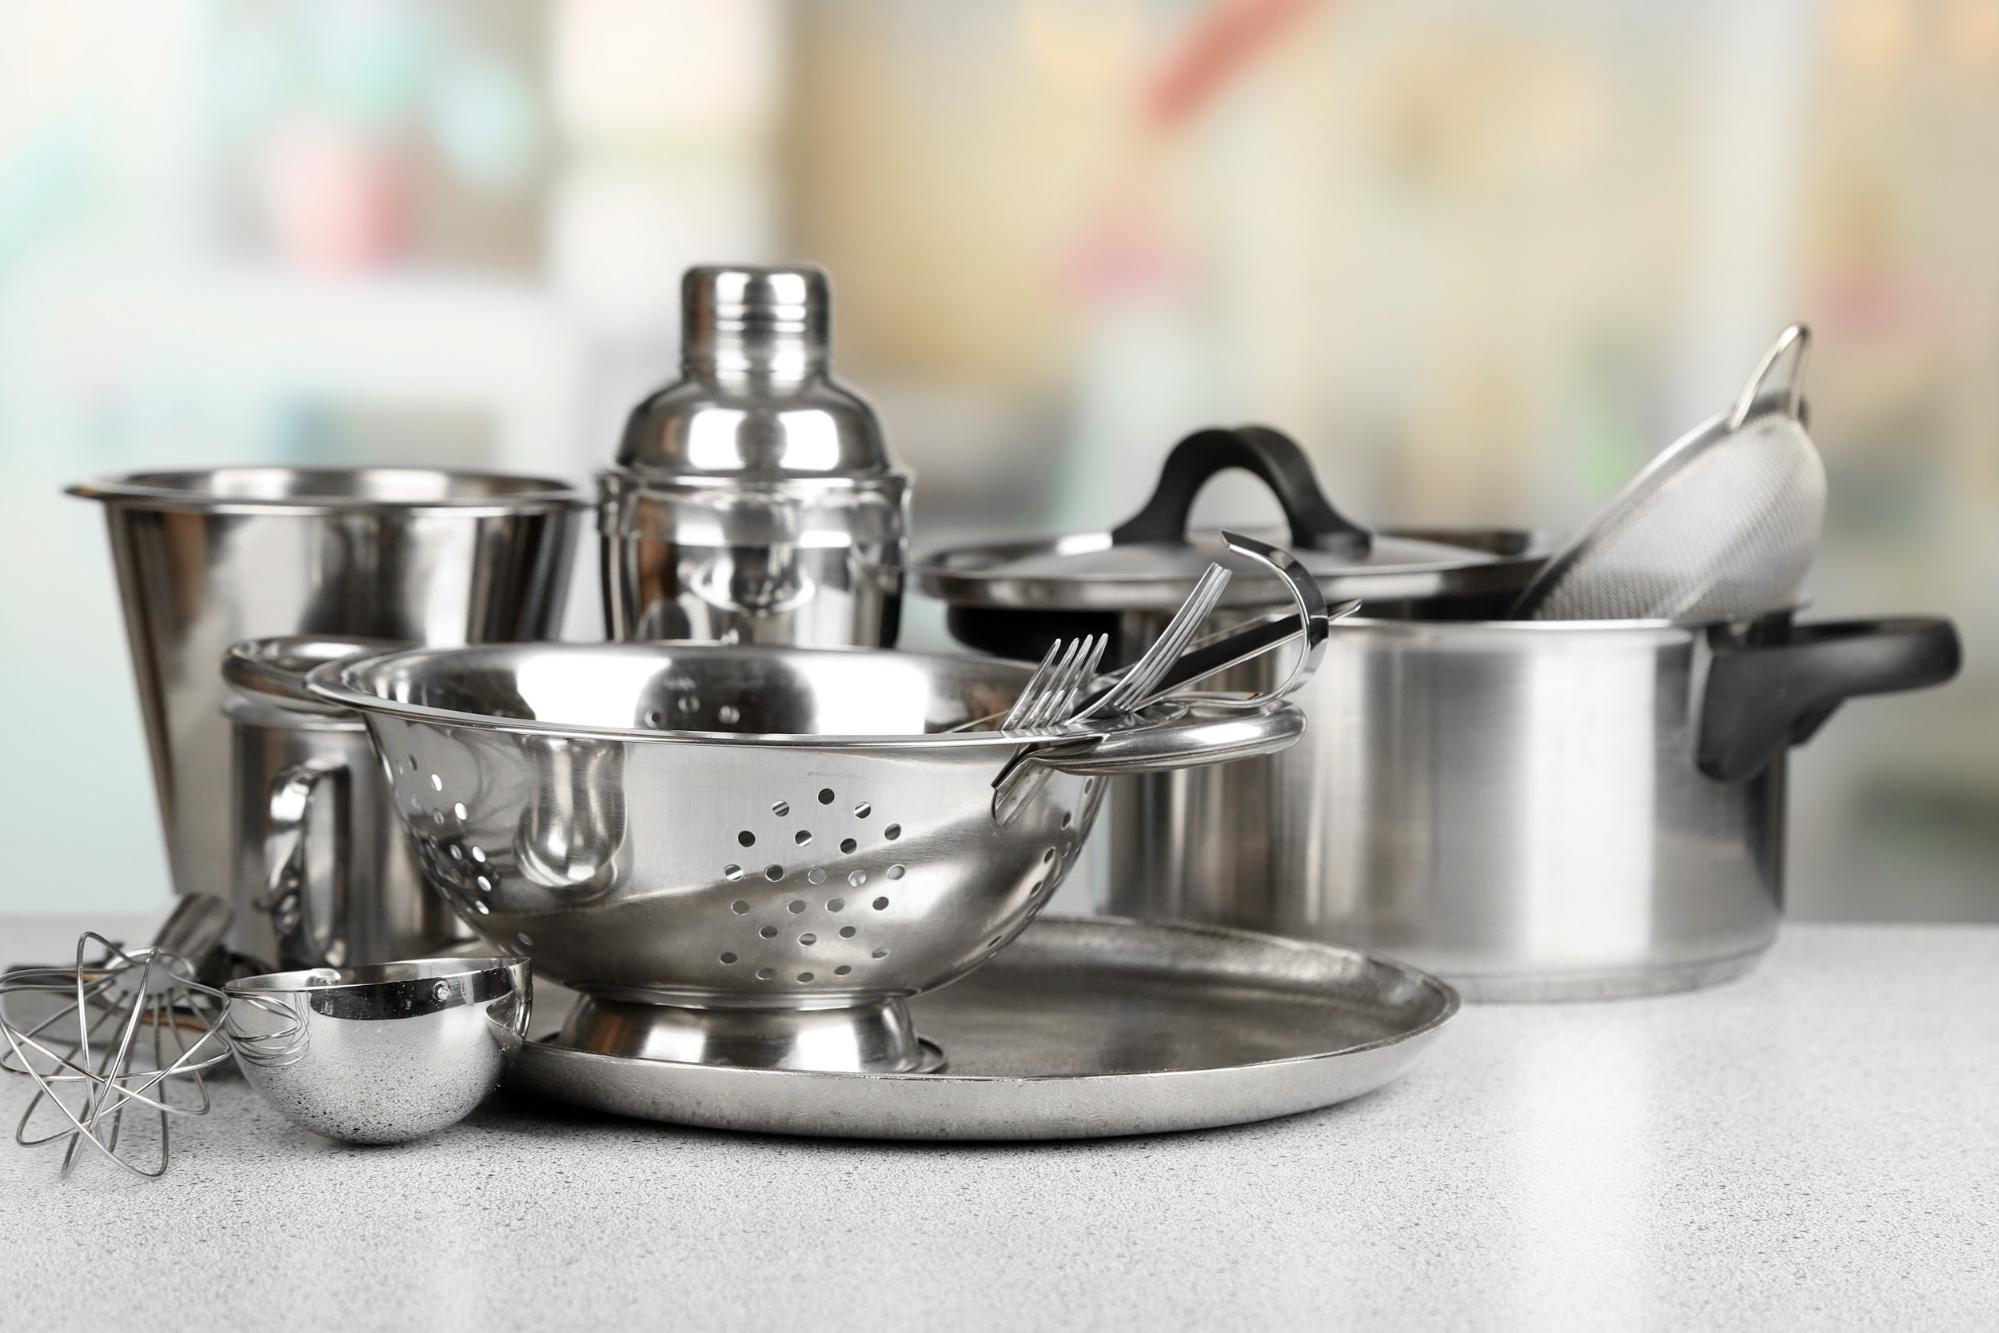 Stainless steel cookware with a passivation conversion coating